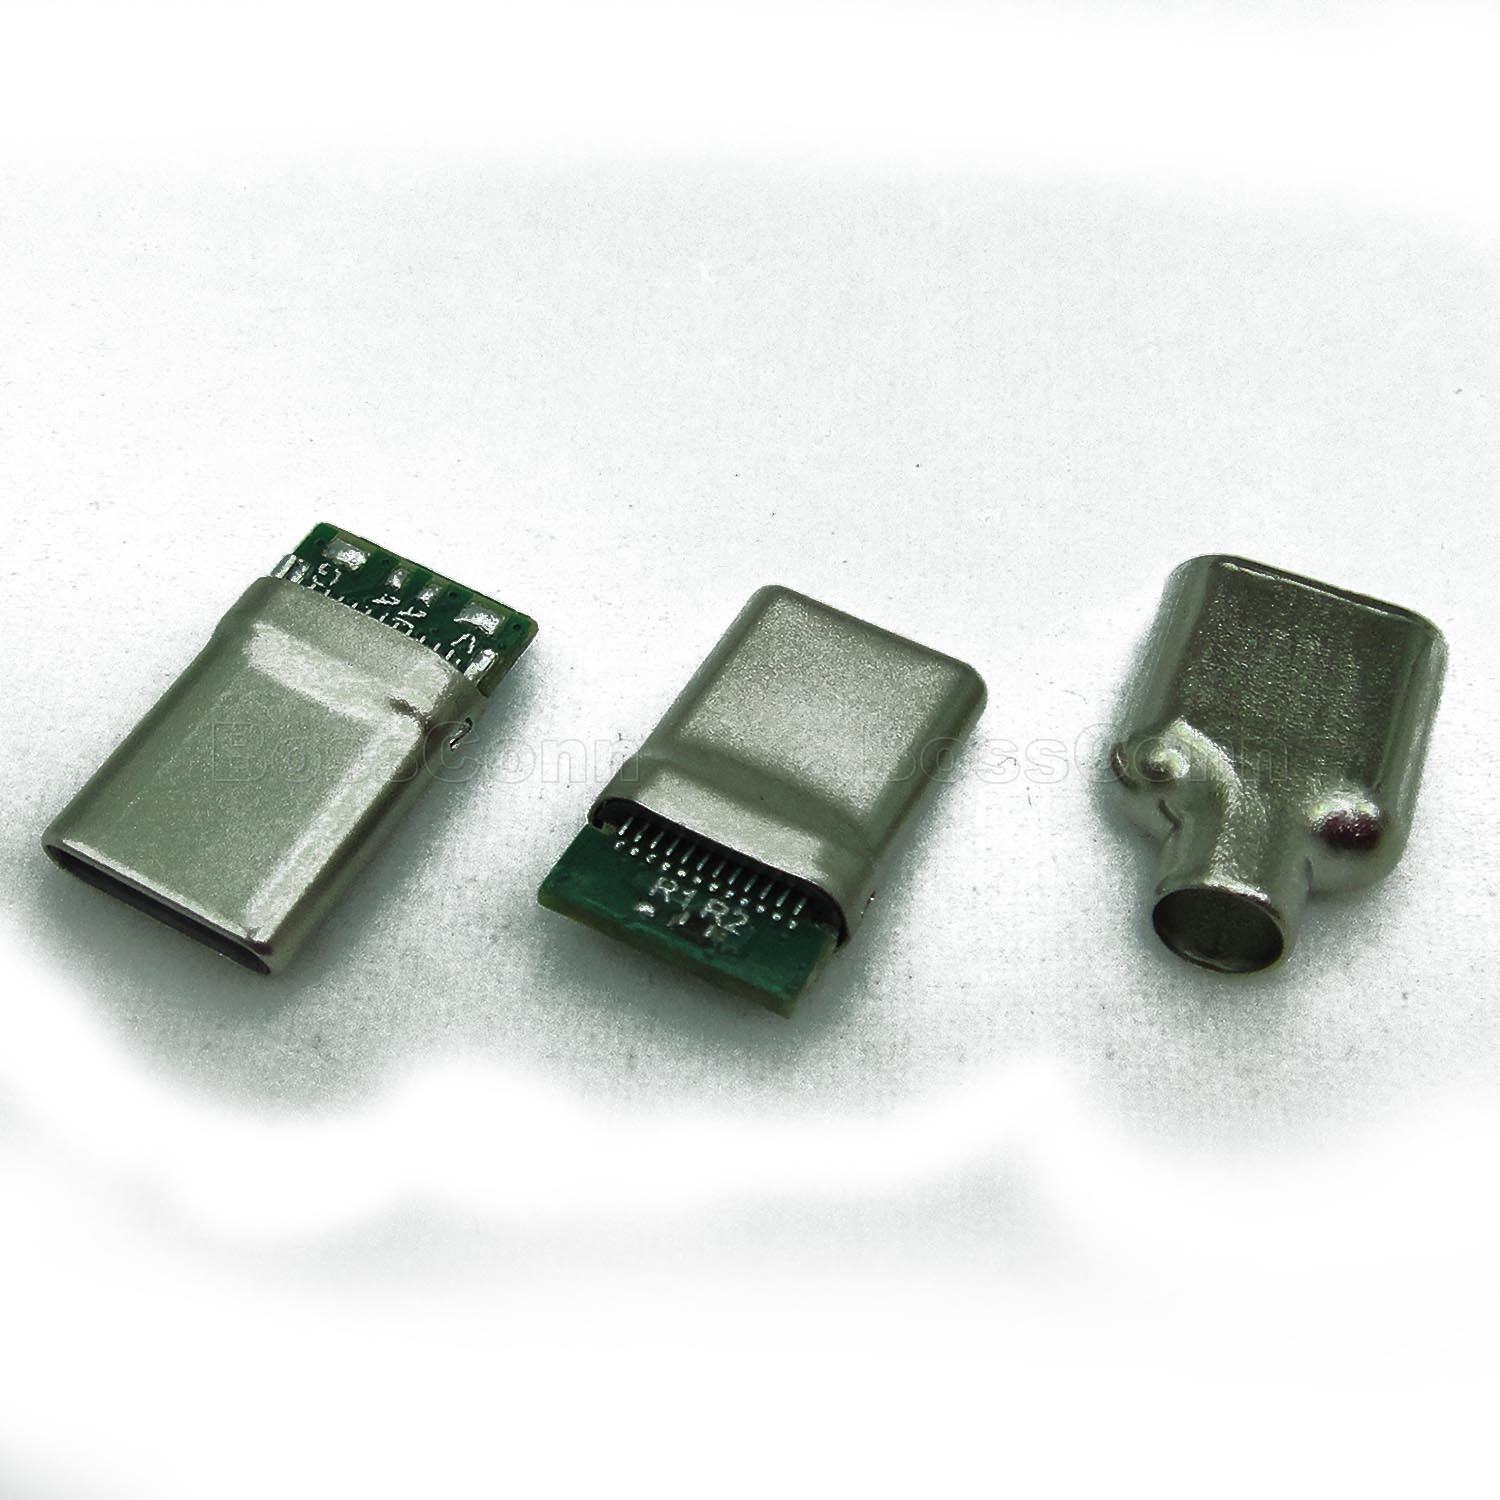 USB Type C Male Connector, For USB 2.0 A Type Cable Assembly